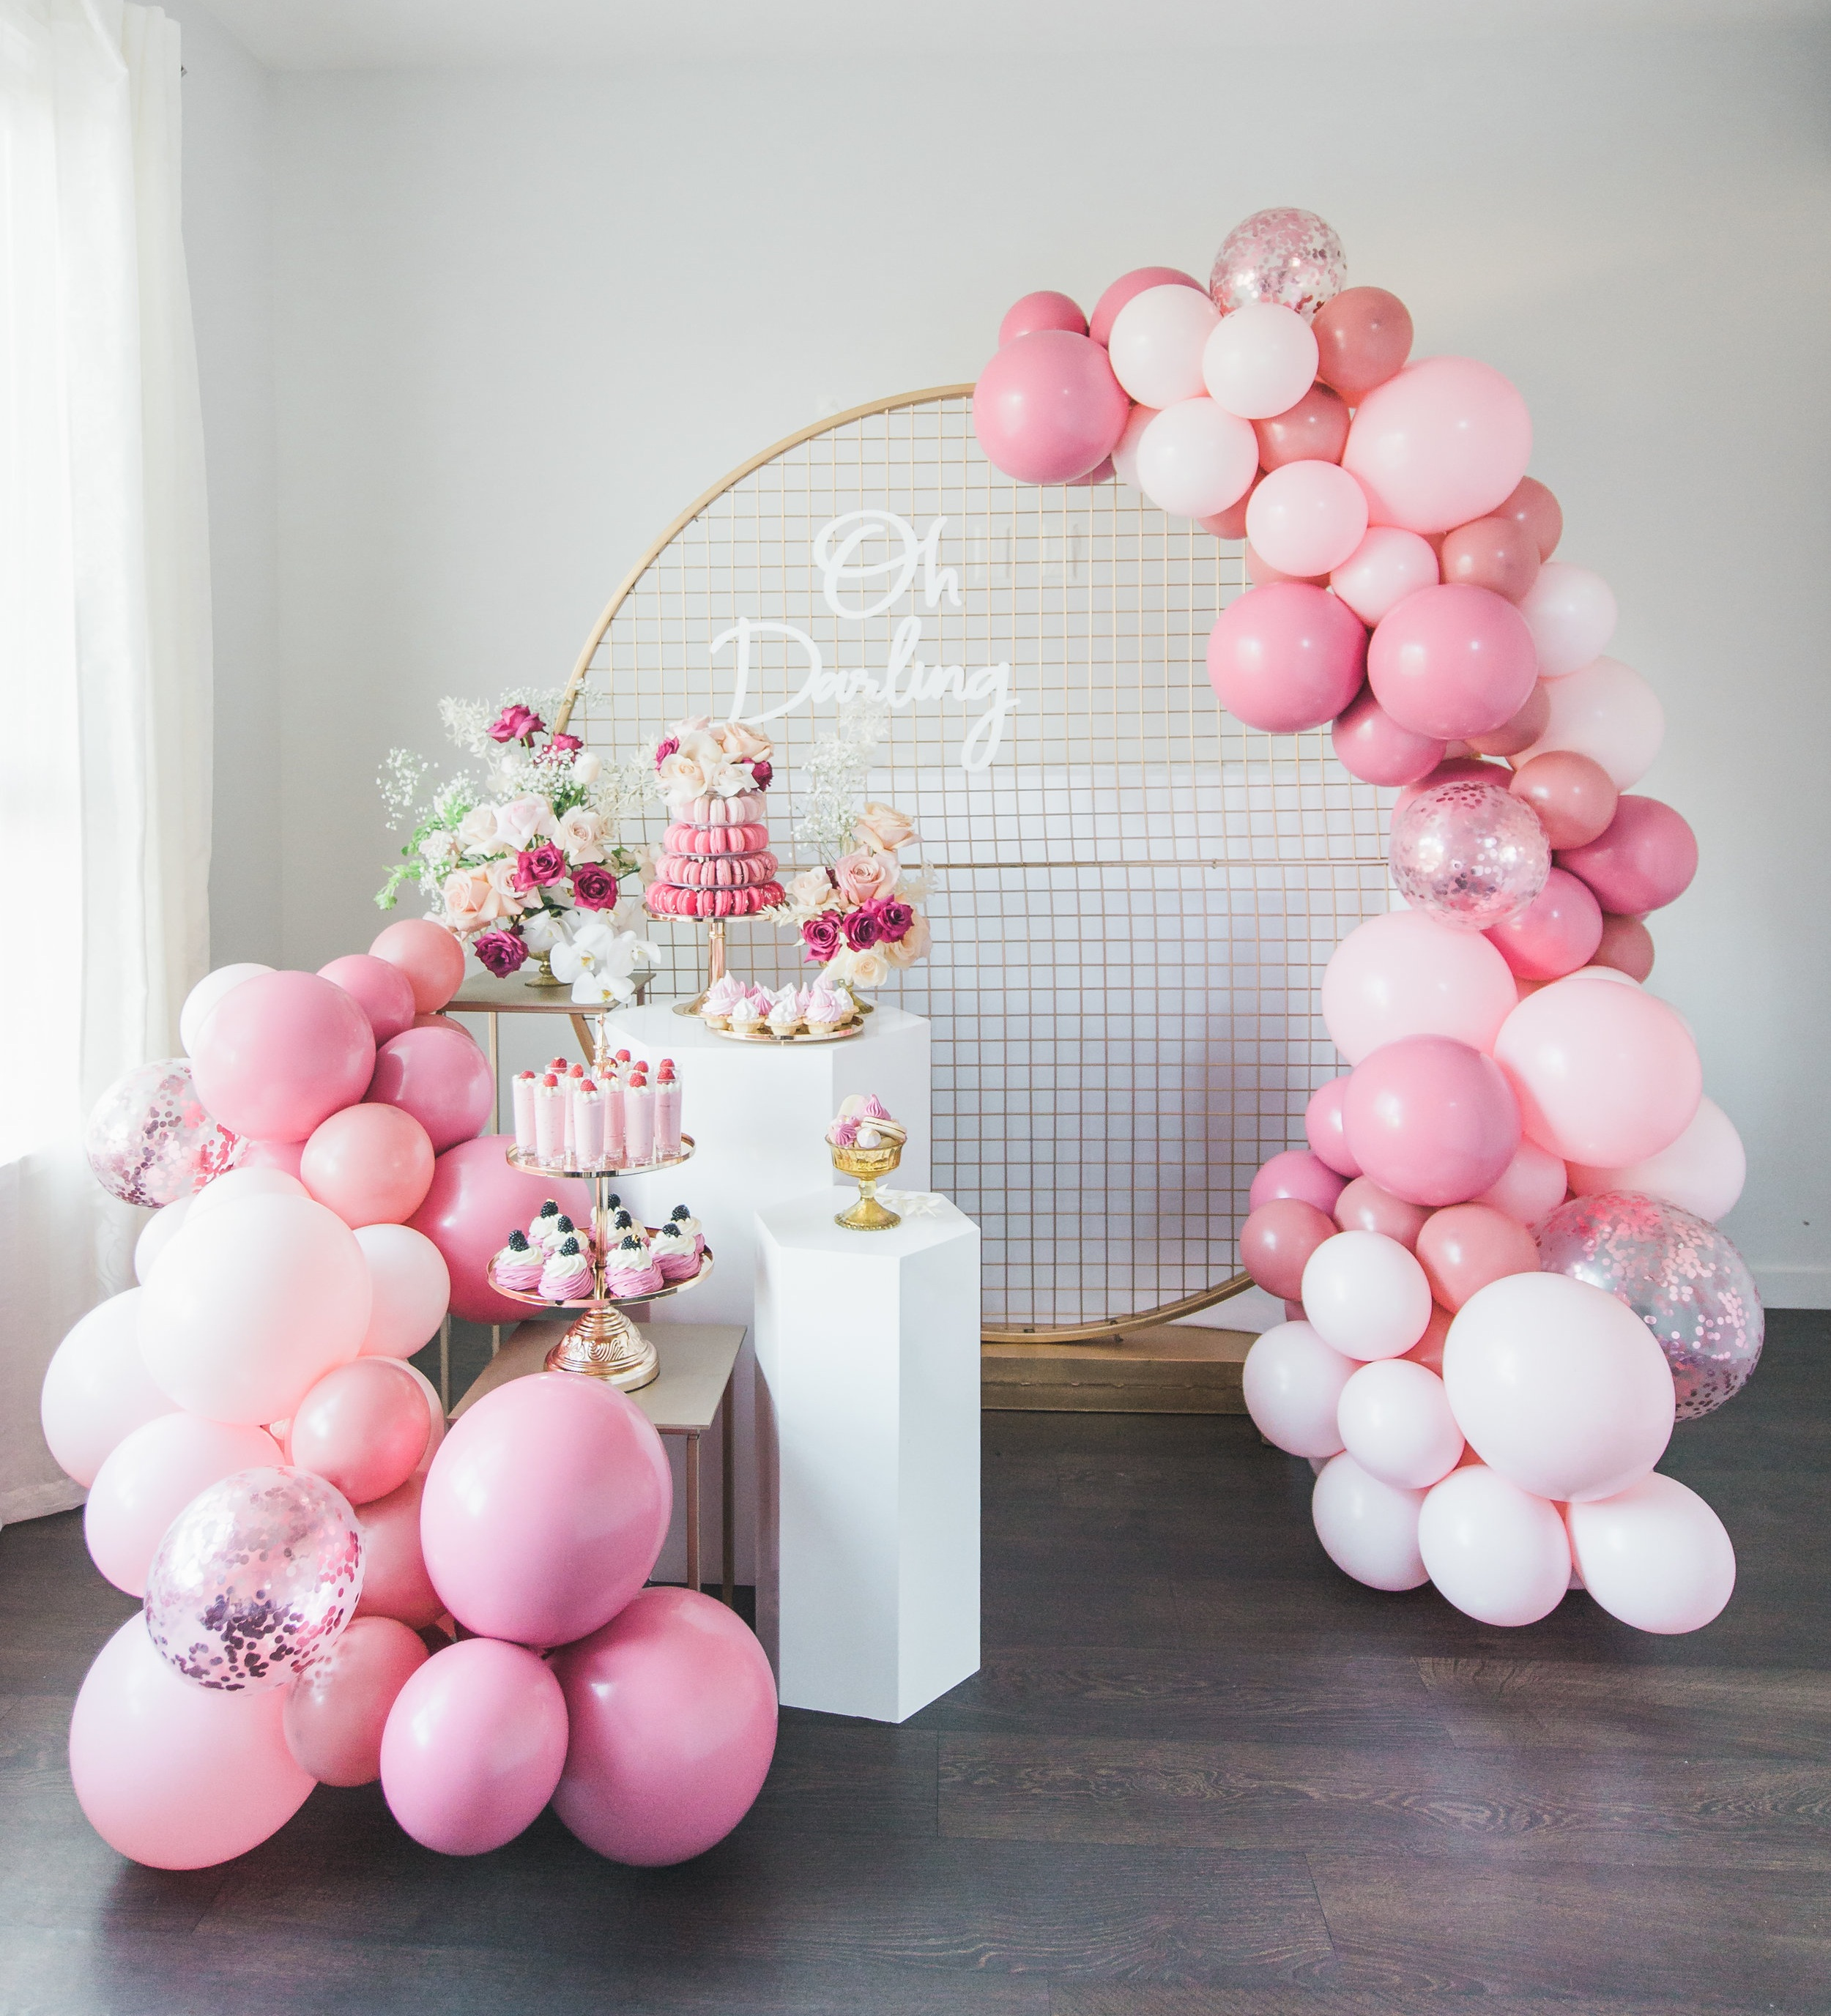 table-co-balloons-setup-2.JPG